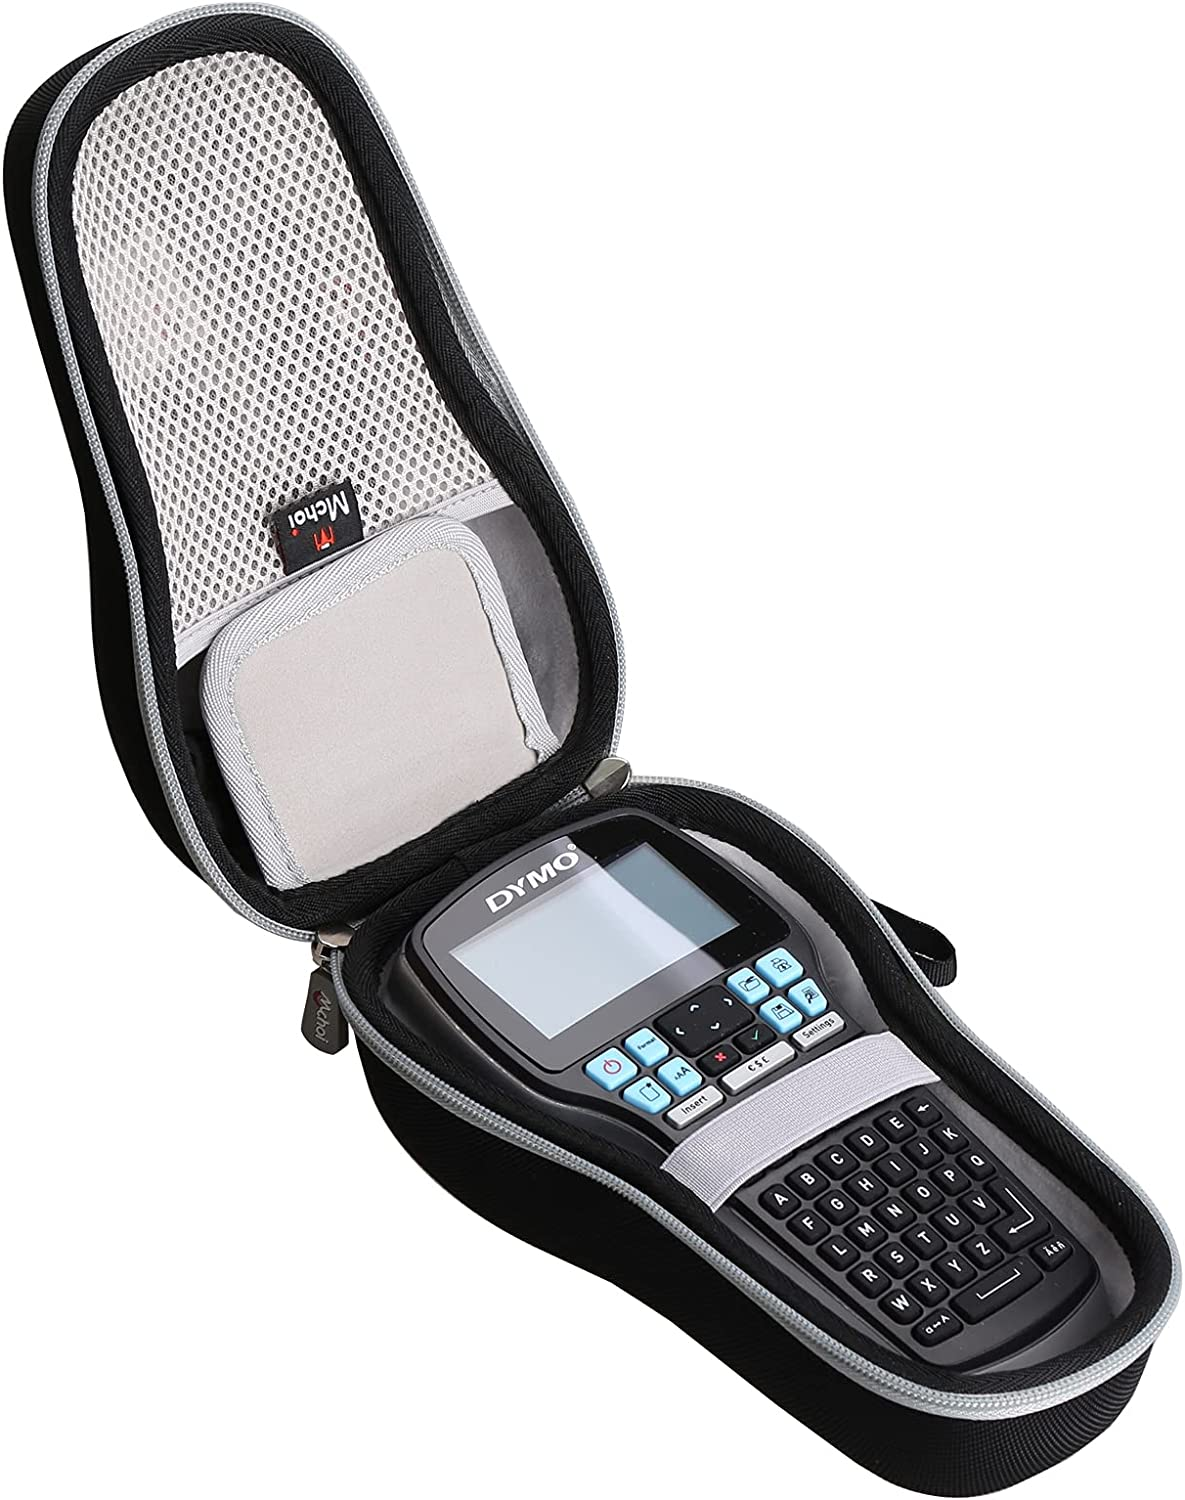 Mchoi Hard Portable Case Compatible LabelM Max 63% OFF service with Label Maker DYMO